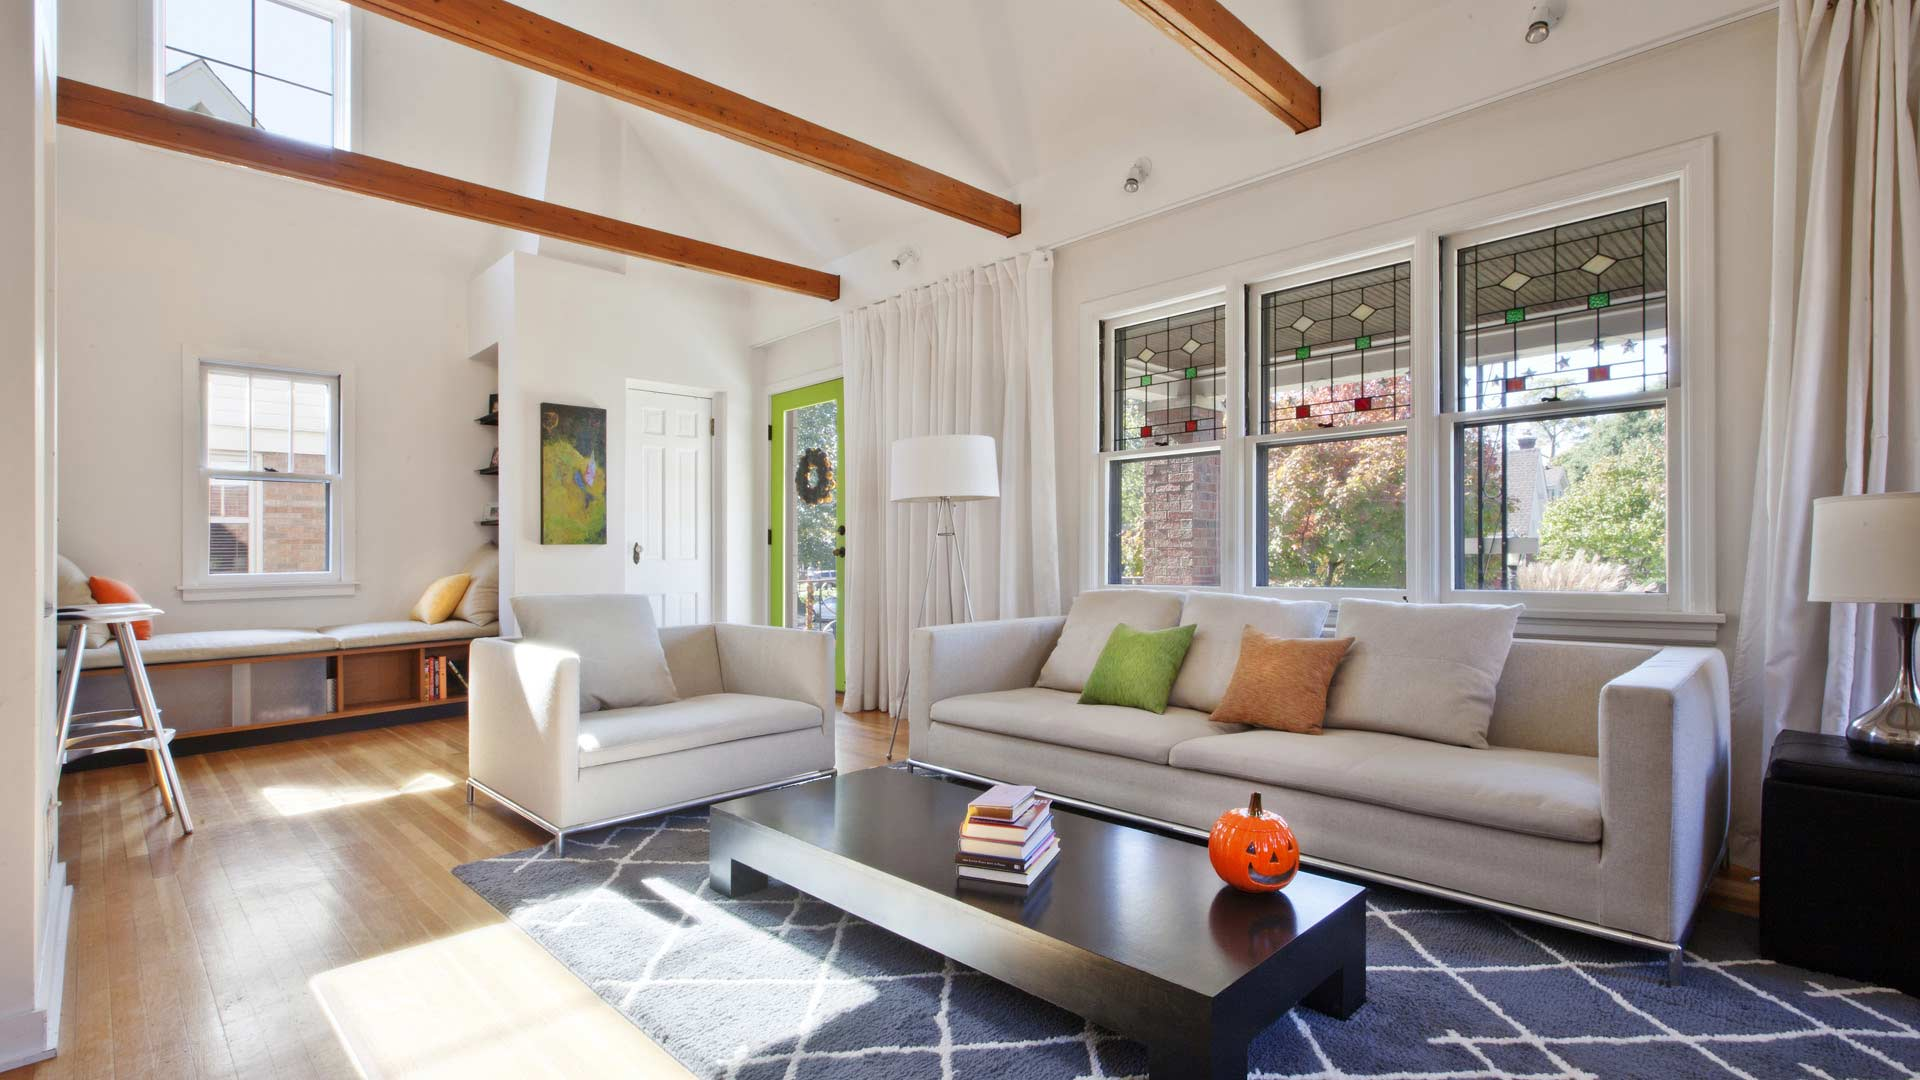 Renovated Living space adds vaulted ceiling with exposed beams, art niche, window seat and new modern details - Classic Irvington Tudor Remodel - Indianapolis, IN